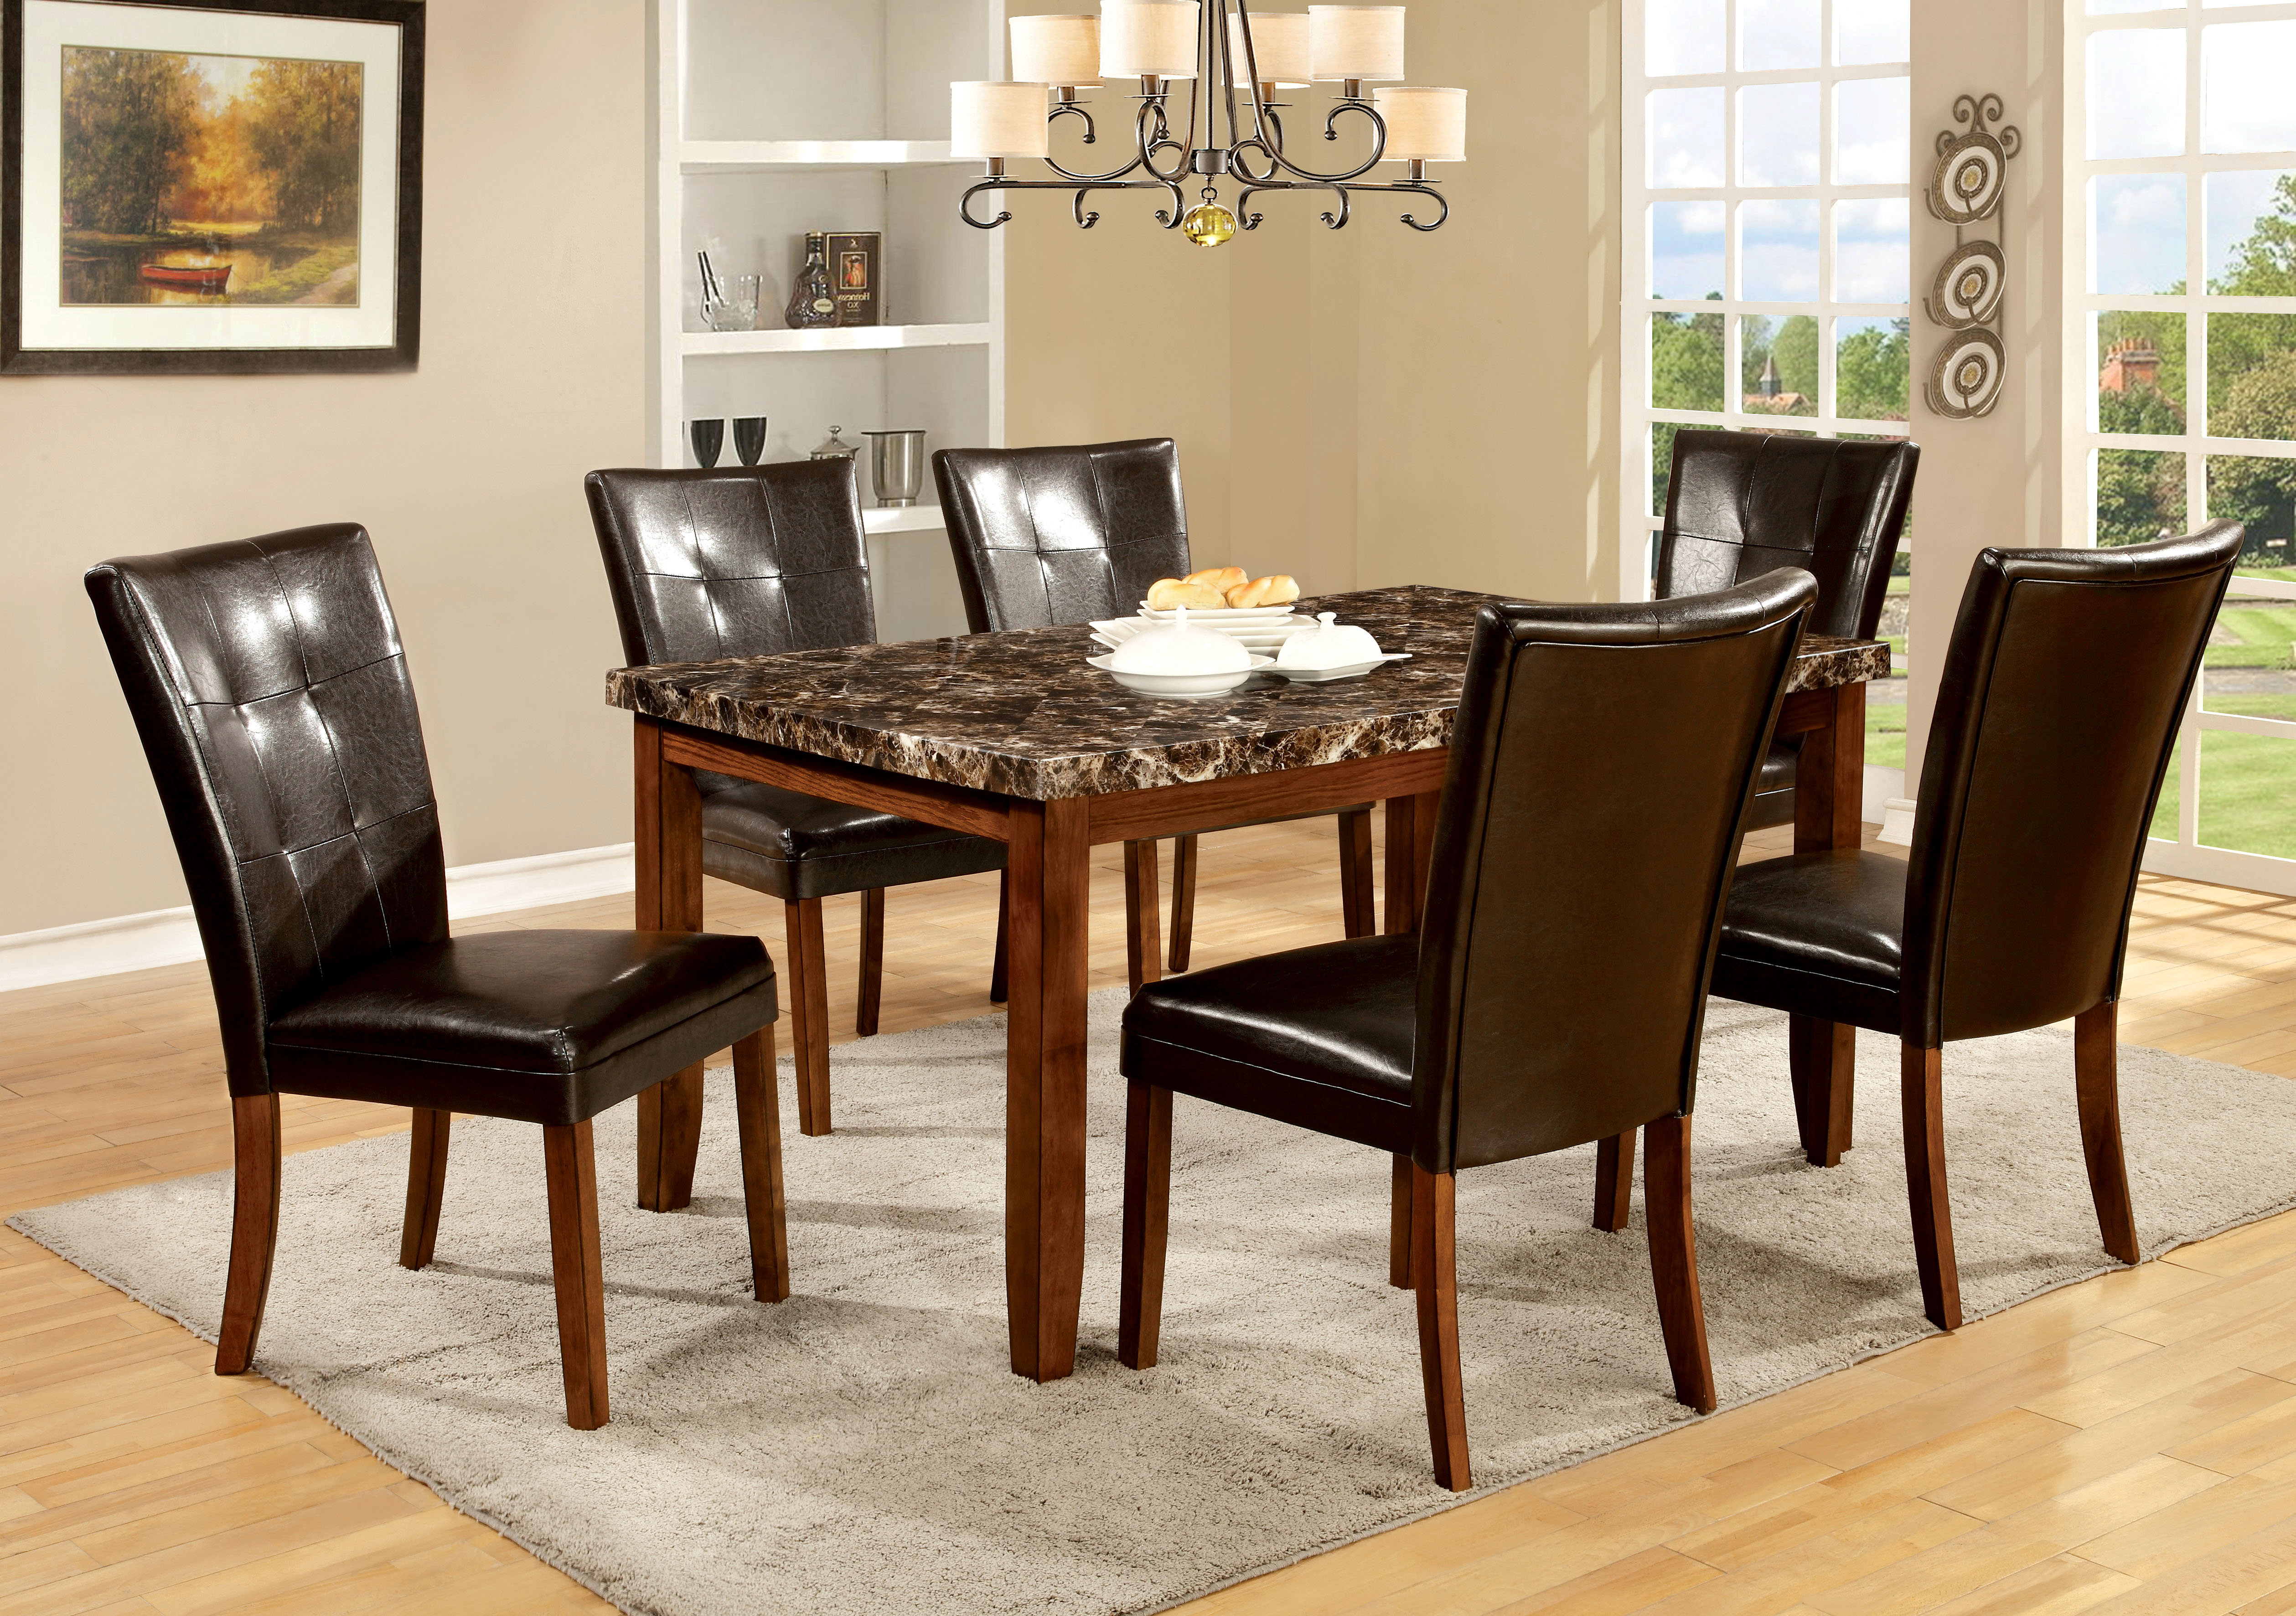 p P kitchen table chairs Furniture of America Mawson Faux Marble 6 Piece Dining Table Set Home Furniture Dining Kitchen Furniture Dining Sets Collections